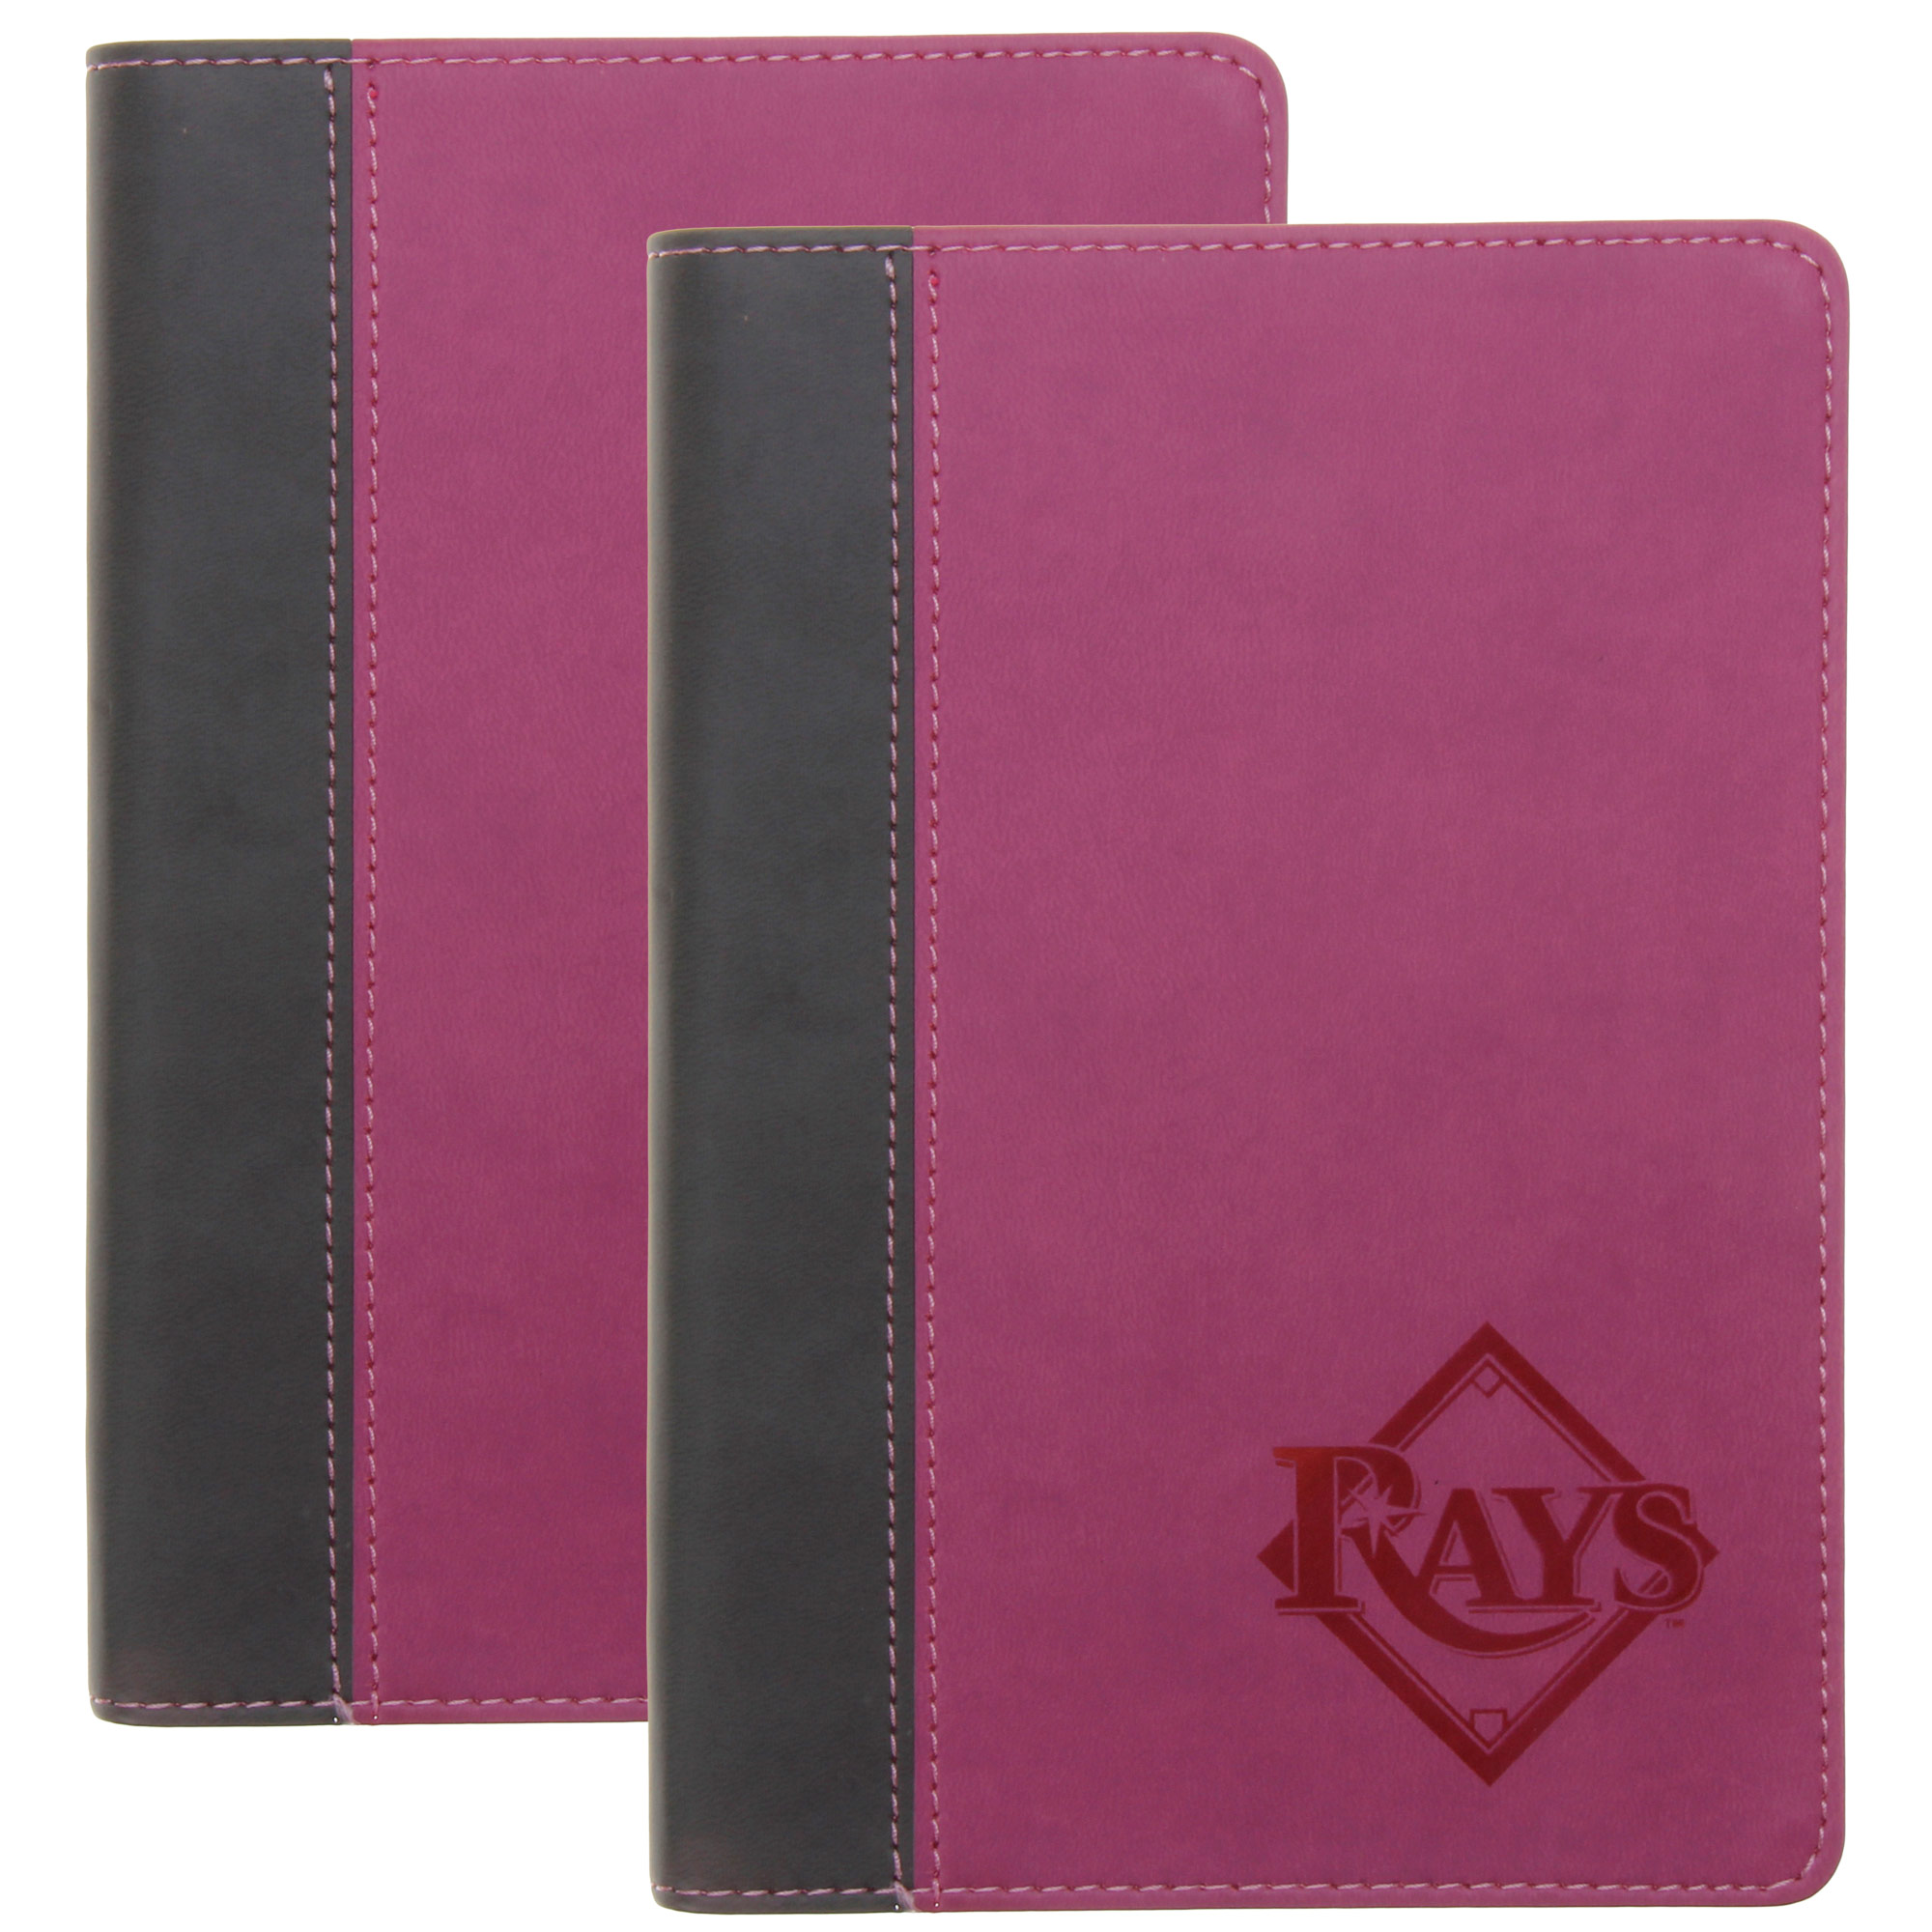 Tampa Bay Rays Journal 2-Pack - Pink - No Size